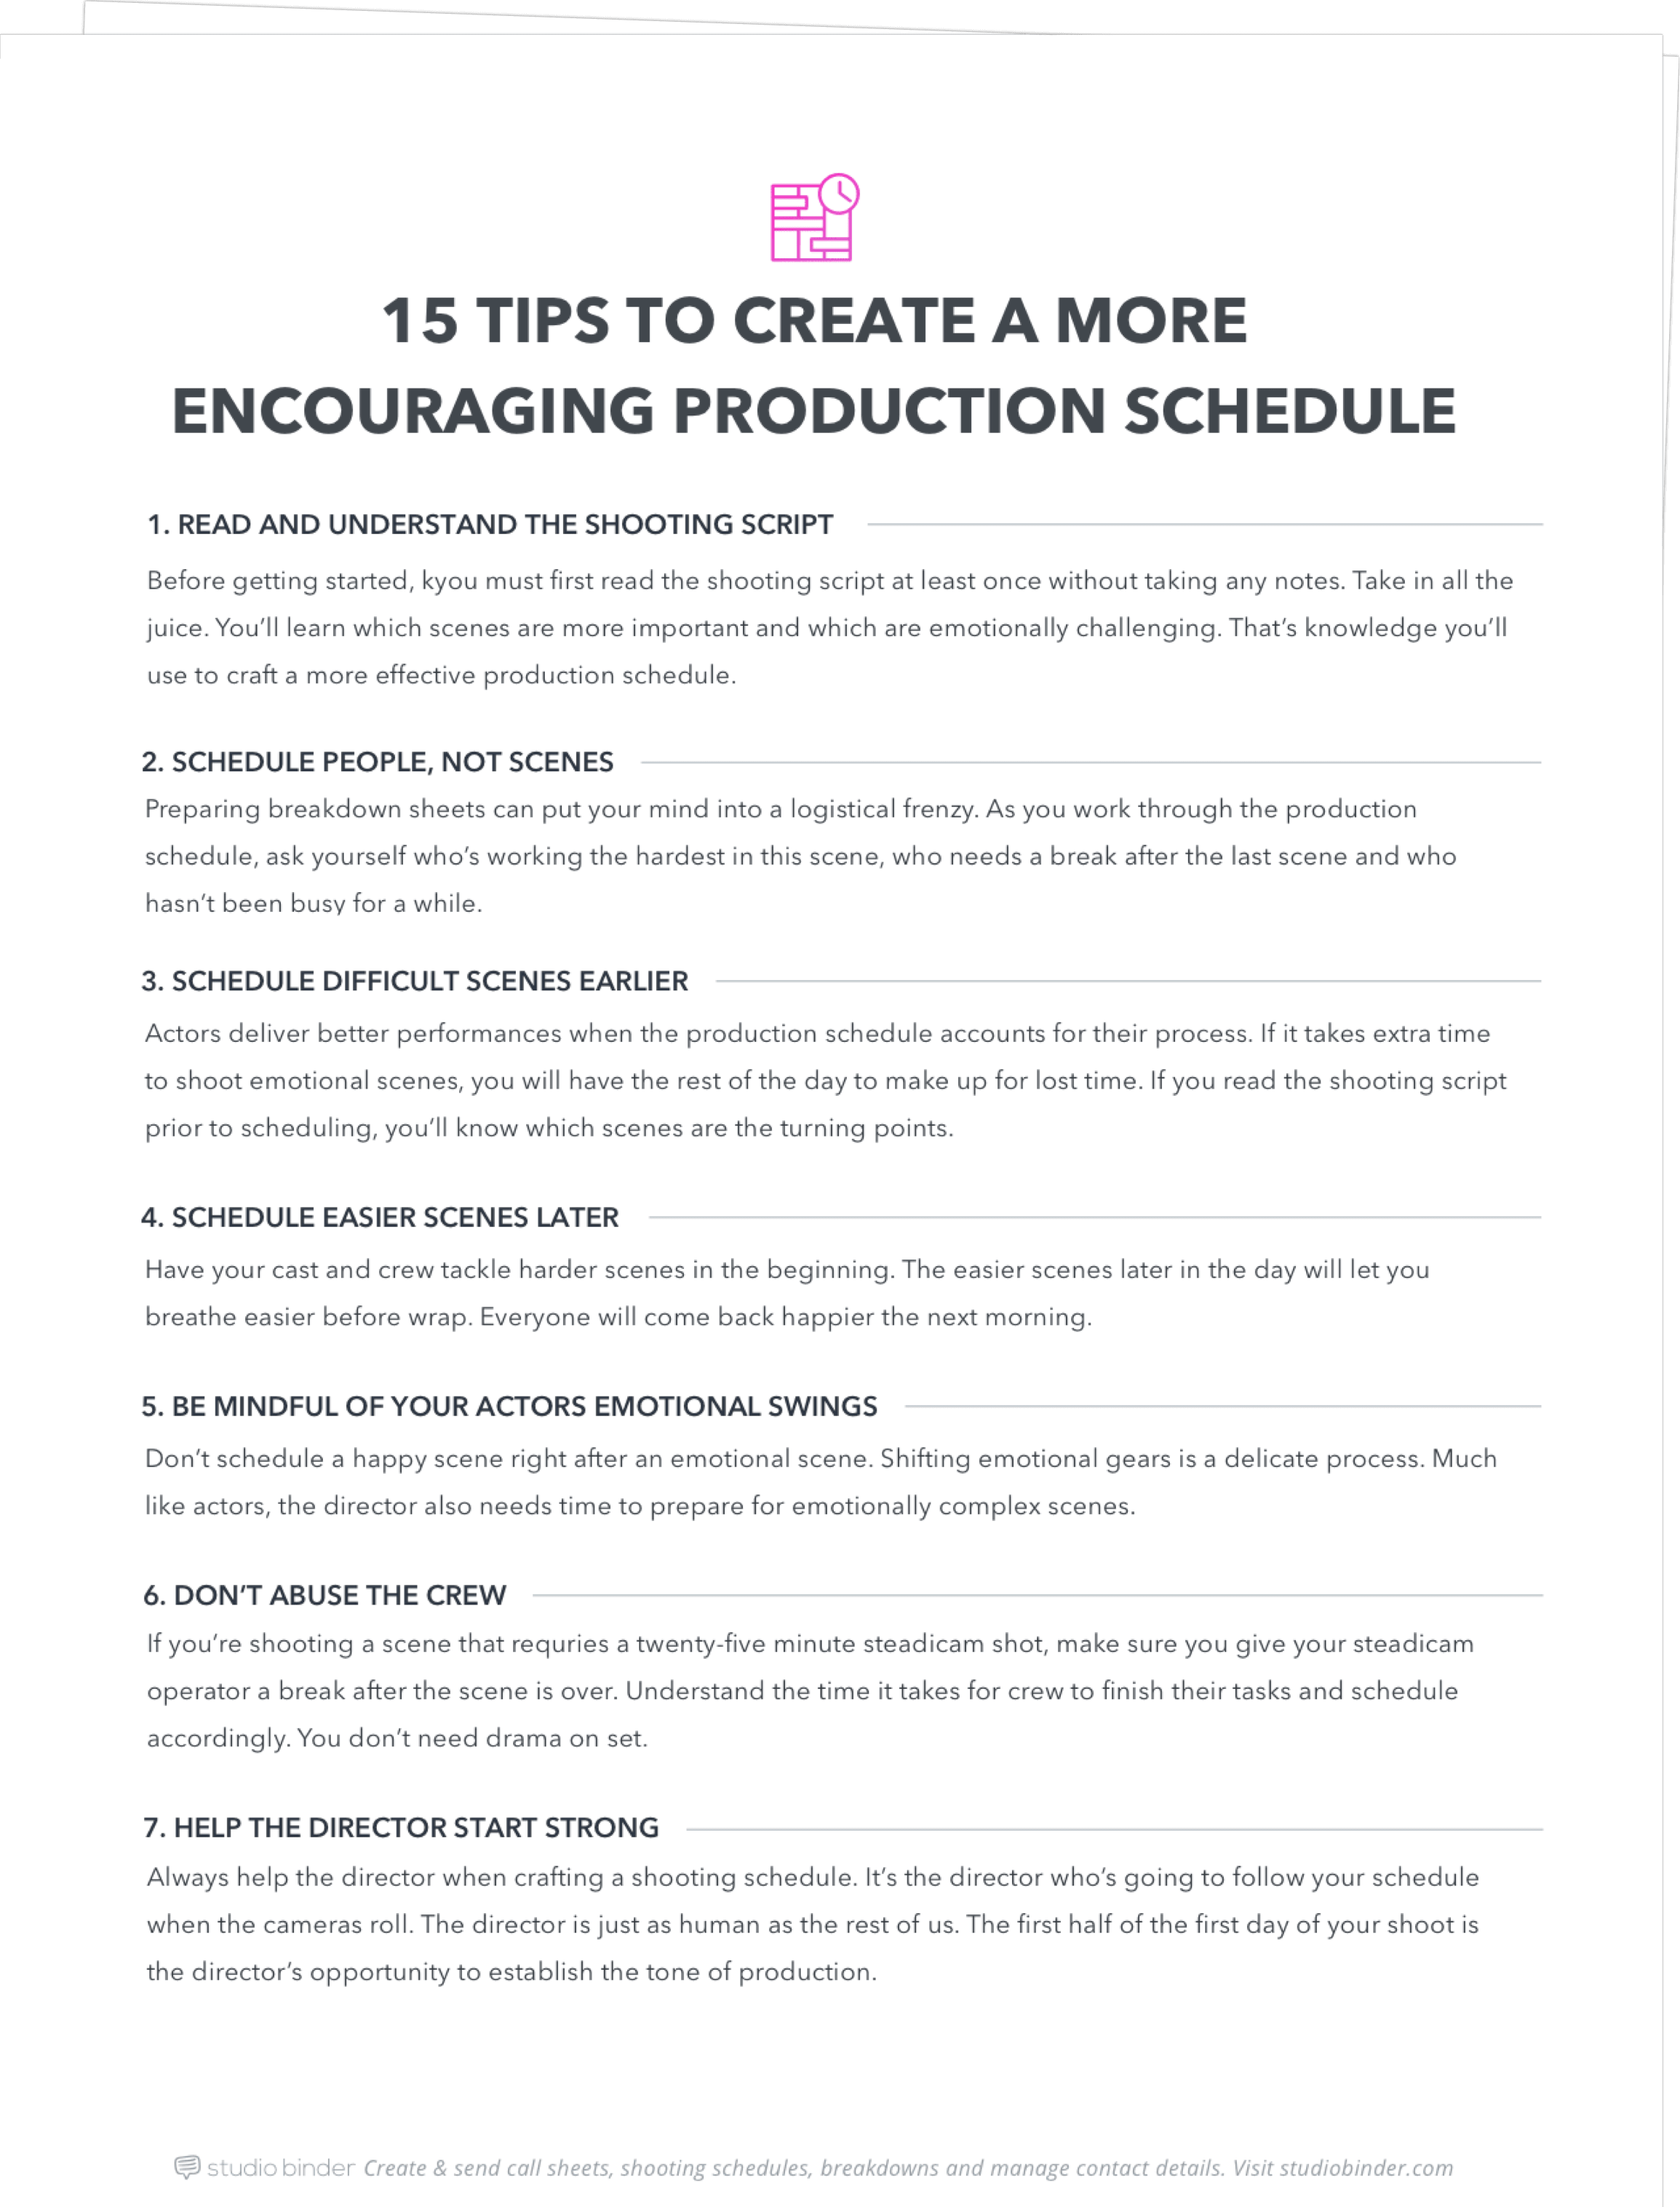 15 pro tips to create a better production schedule